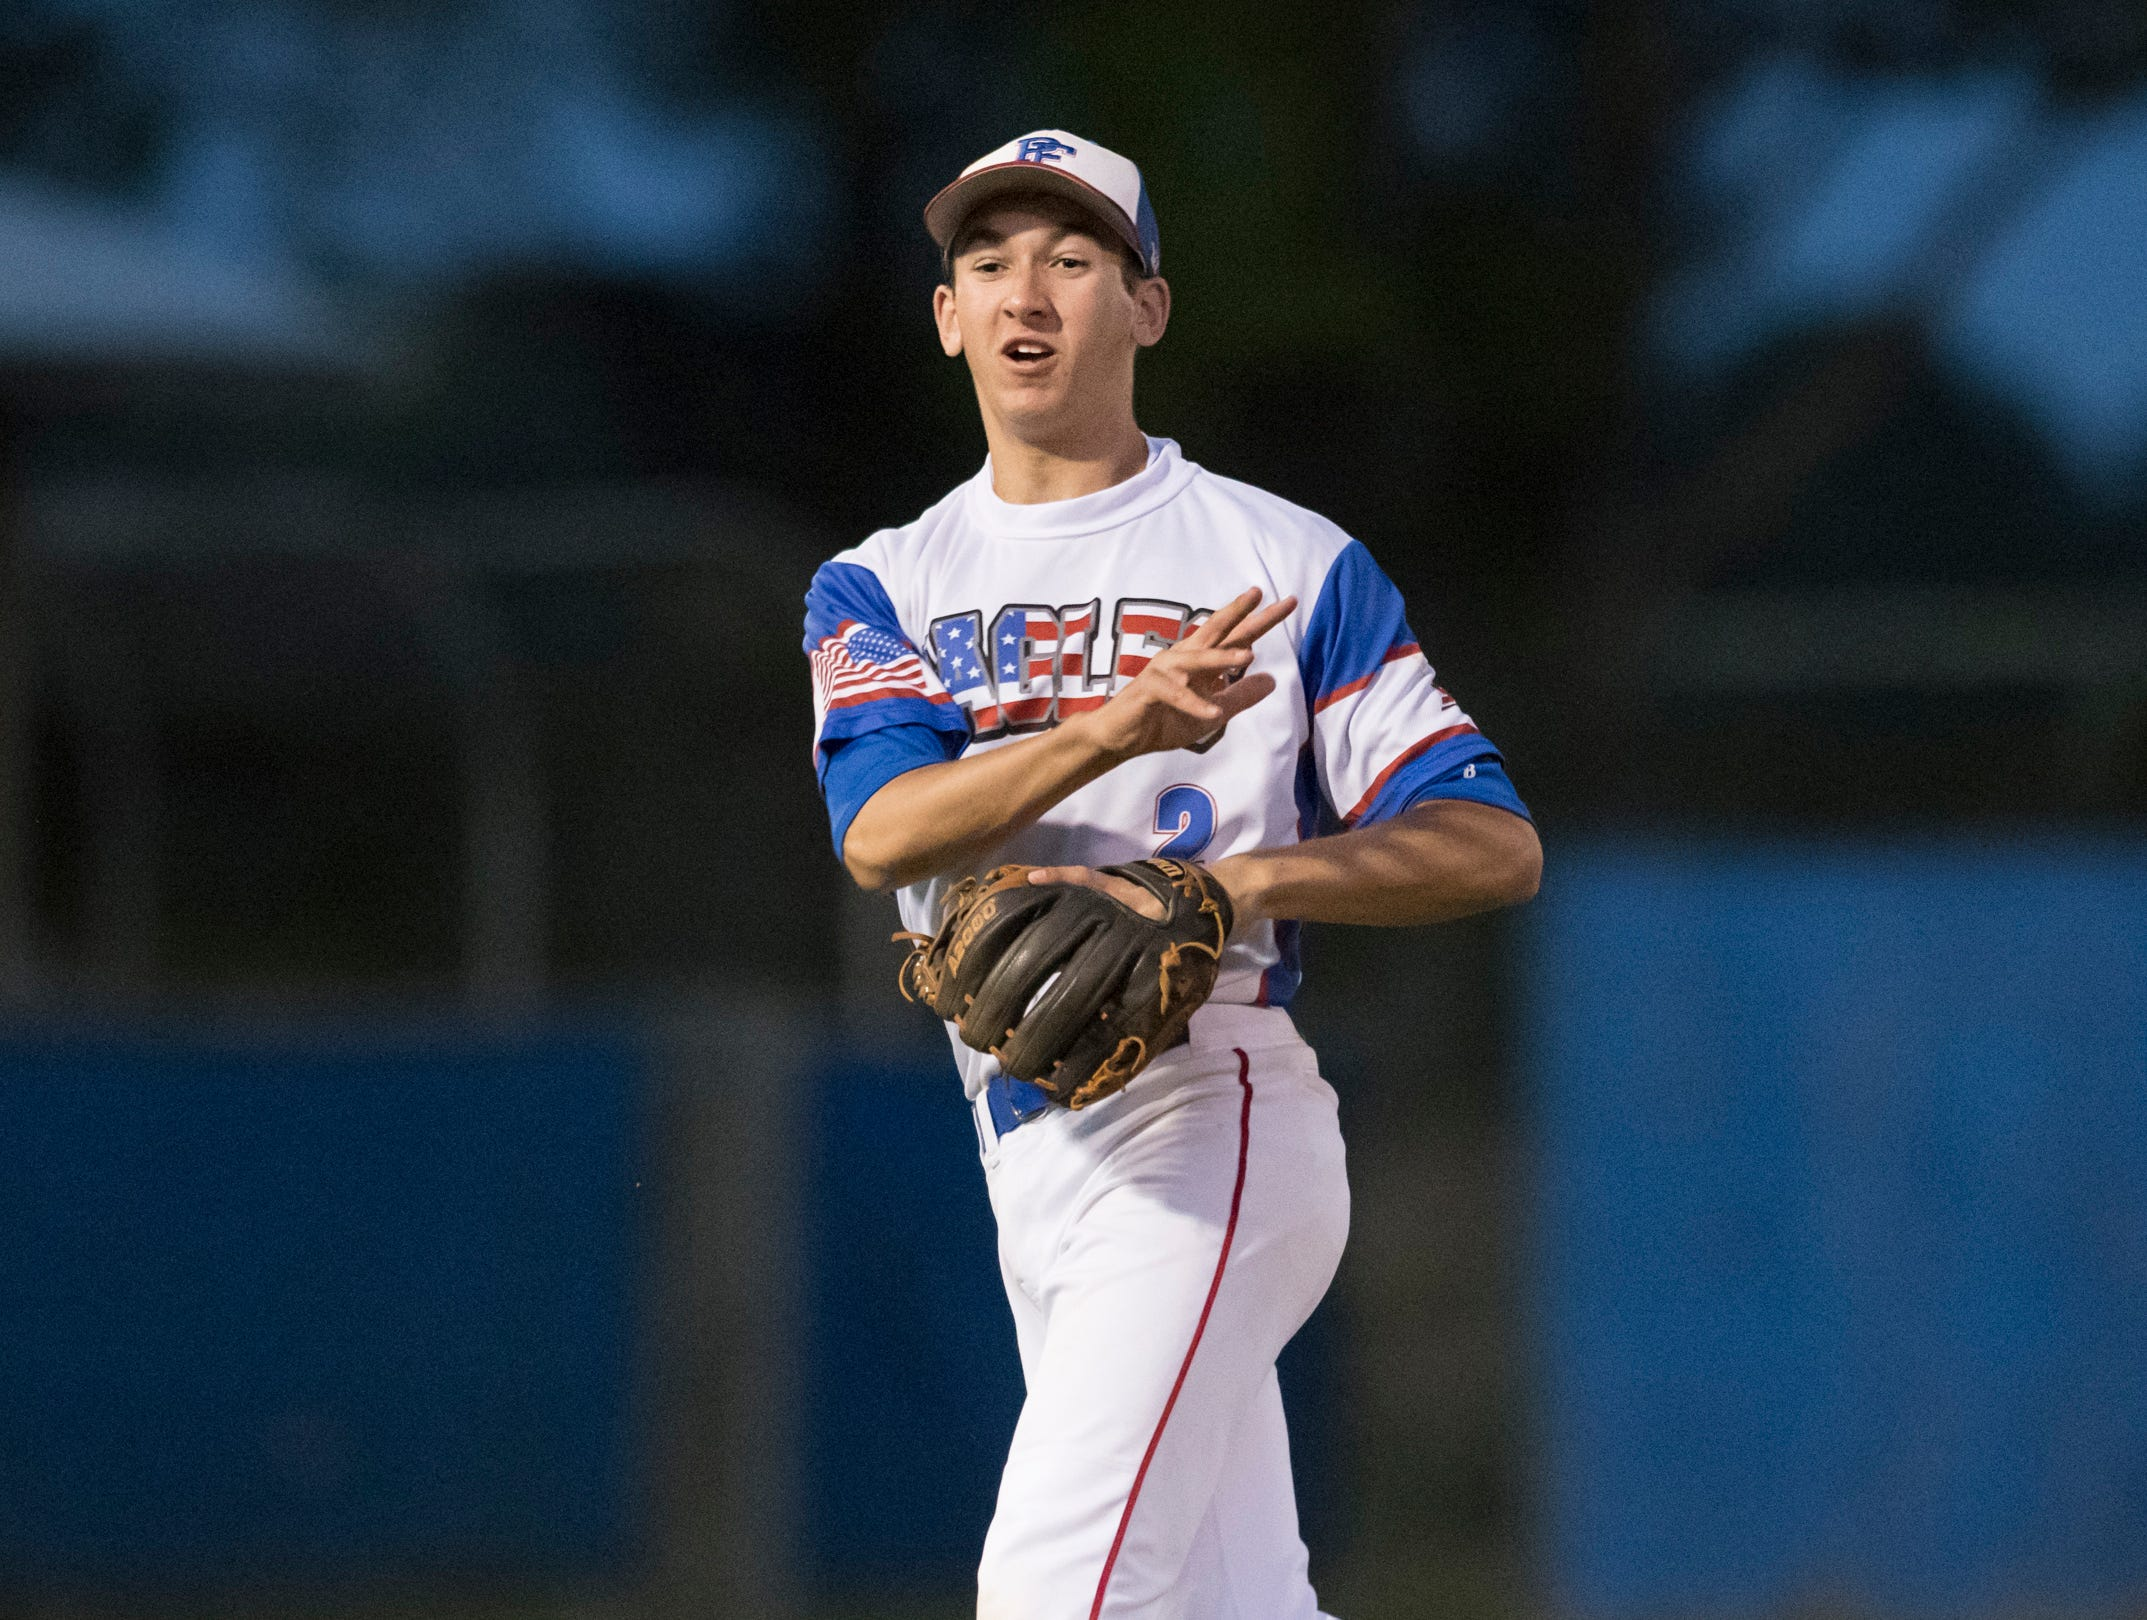 Second baseman John Pinette (2) tosses to first but is a little too late for the out during the Christian Educational Consortium vs Pine Forest baseball game at Pine Forest High School in Pensacola on Wednesday, April 3, 2019.